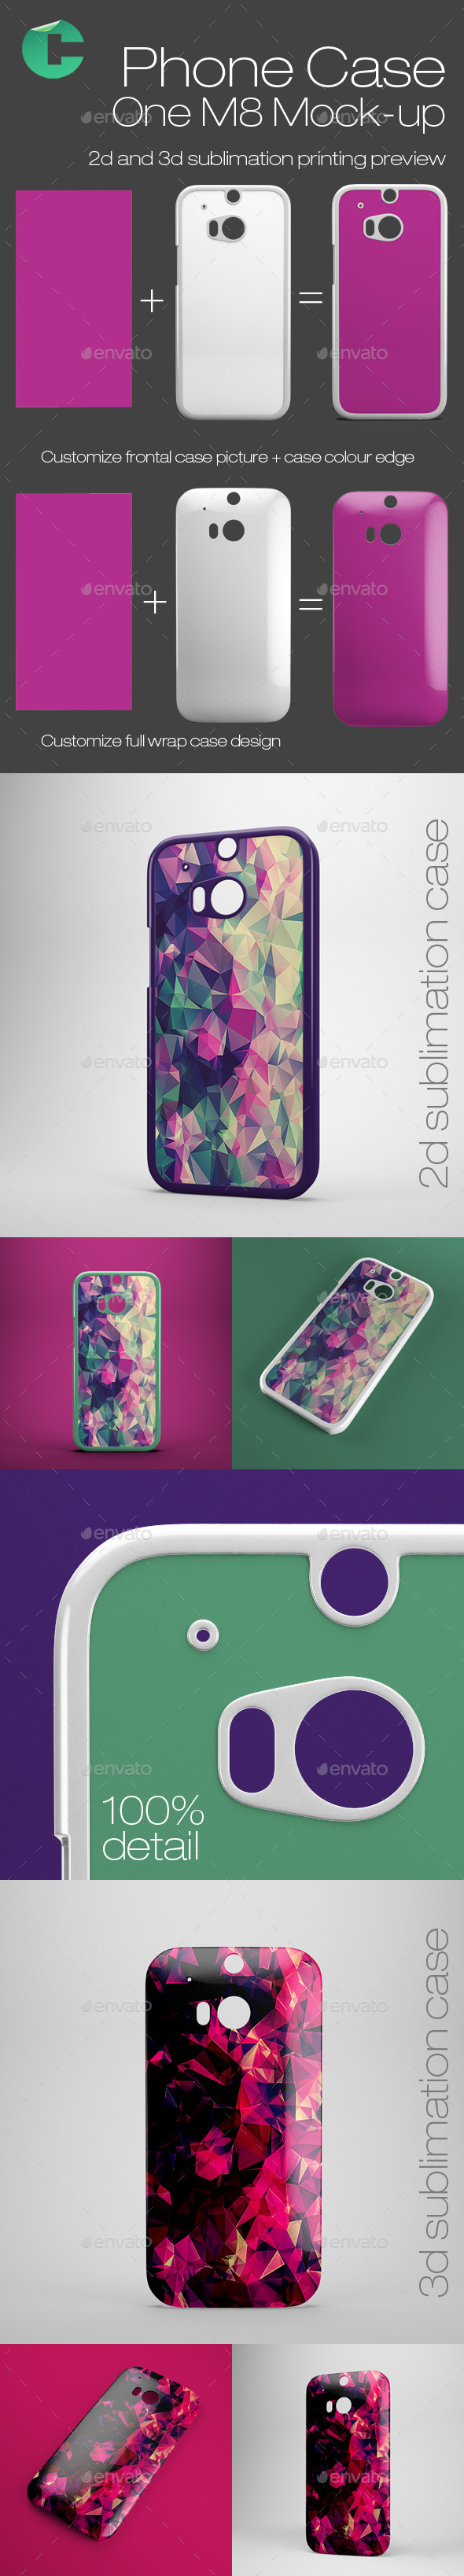 Phone Case One M8 Mock-Up